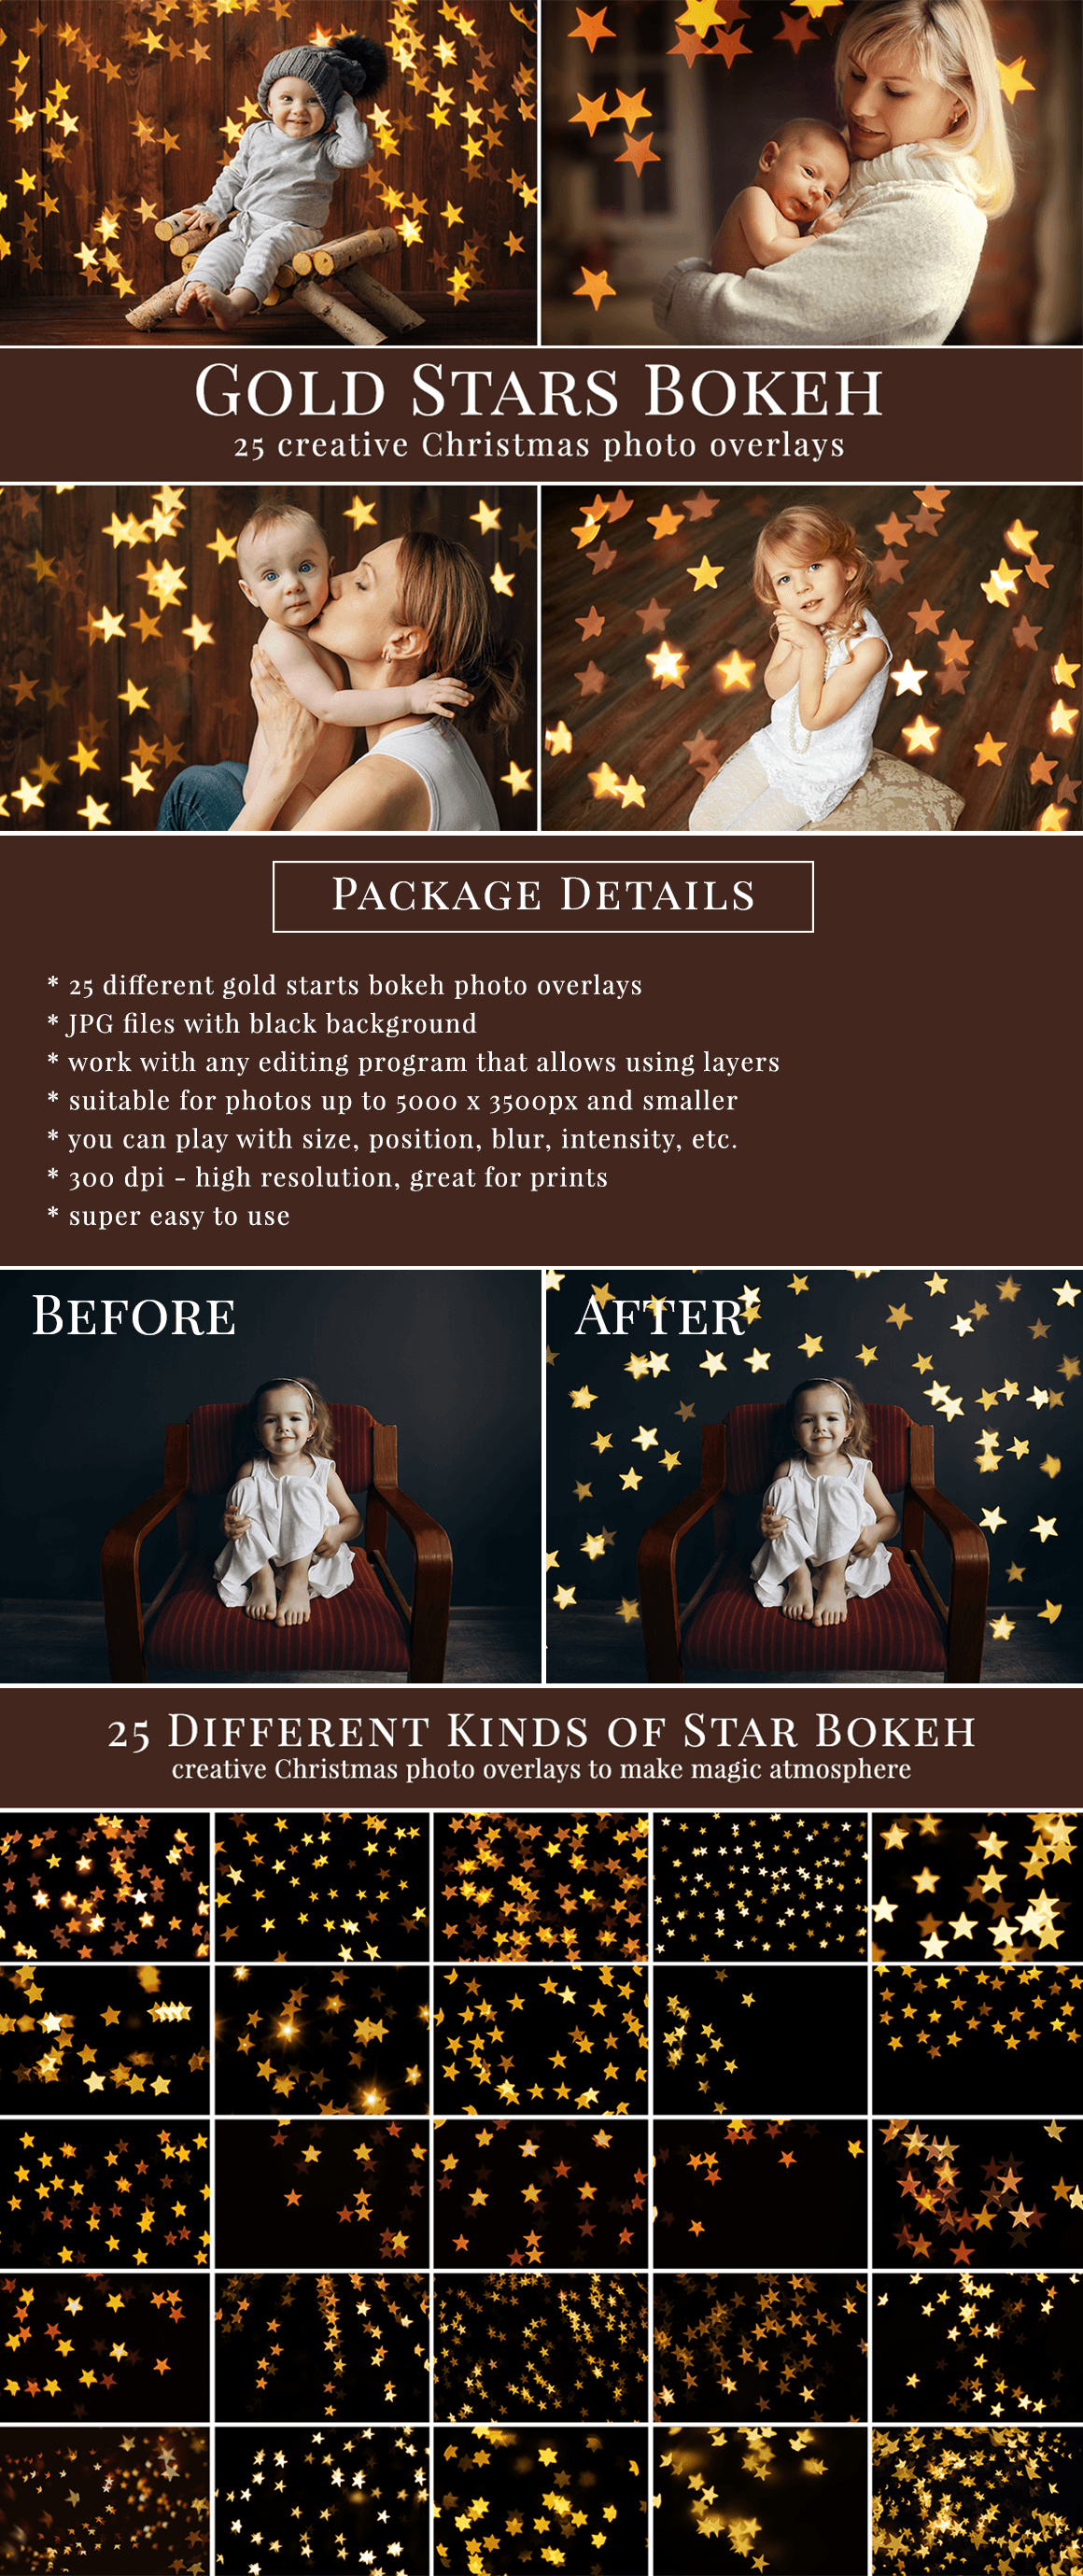 Creative Christmas bokeh photo overlays - all you need to style amazing holiday scenes. Great for Christmas mini sessions. Professional photo overlays for Photoshop, Zoner, Gimp etc. Super easy & fast to use, very pretty result just in one minute. Photo overlays for creative photographers from Brown Leopard.